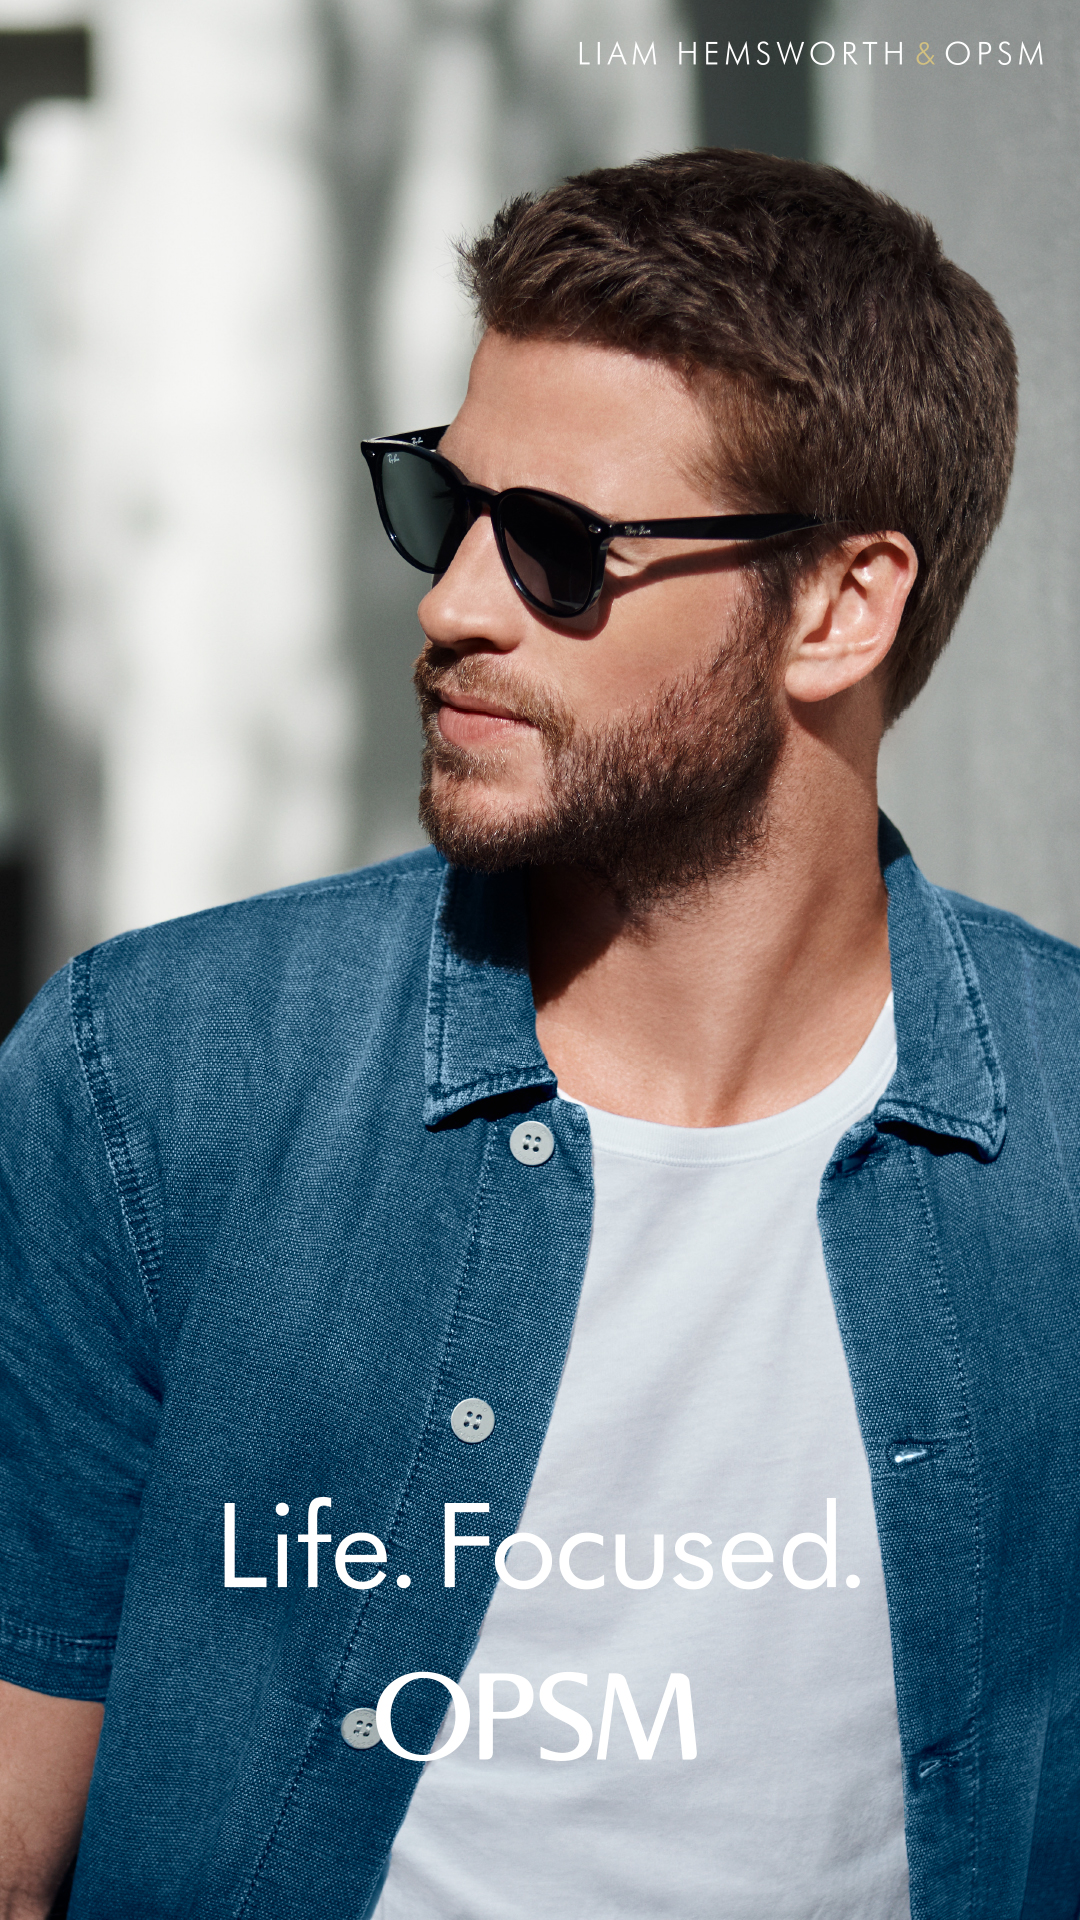 Australian actor Liam Hemsworth fronts OPSM's latest 'Life. Focused' campaign via Bashful